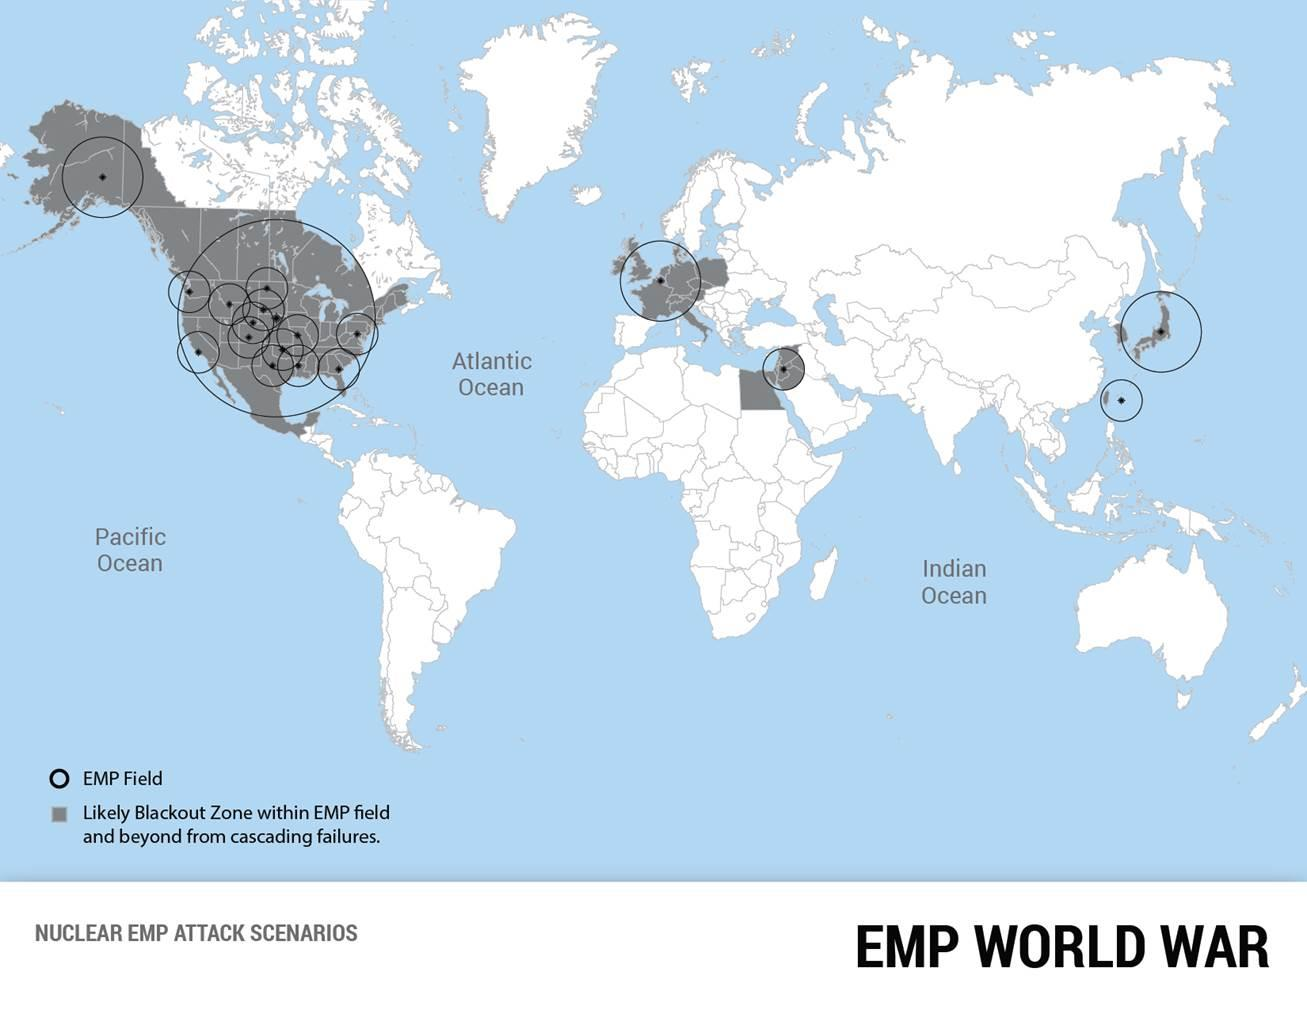 EMP World War